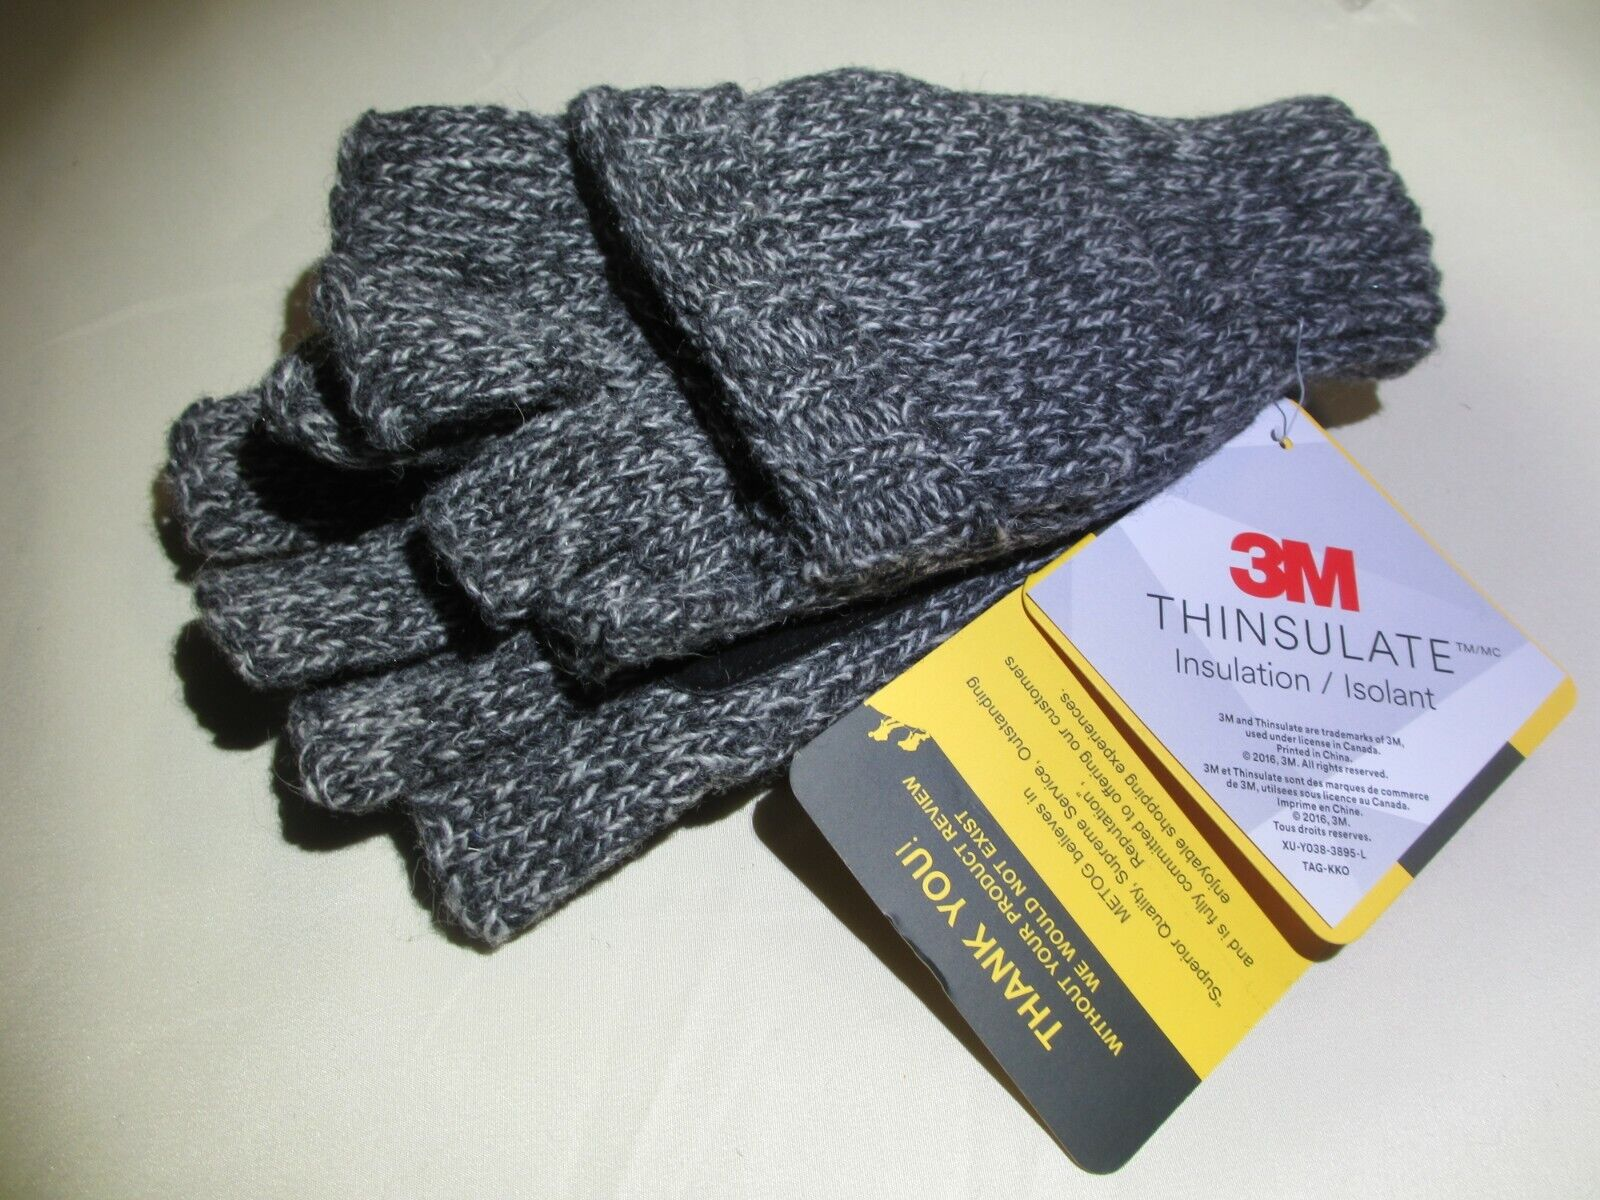 Metog Suede 3M Thinsulate Thermal Insulation Mittens,Gloves,